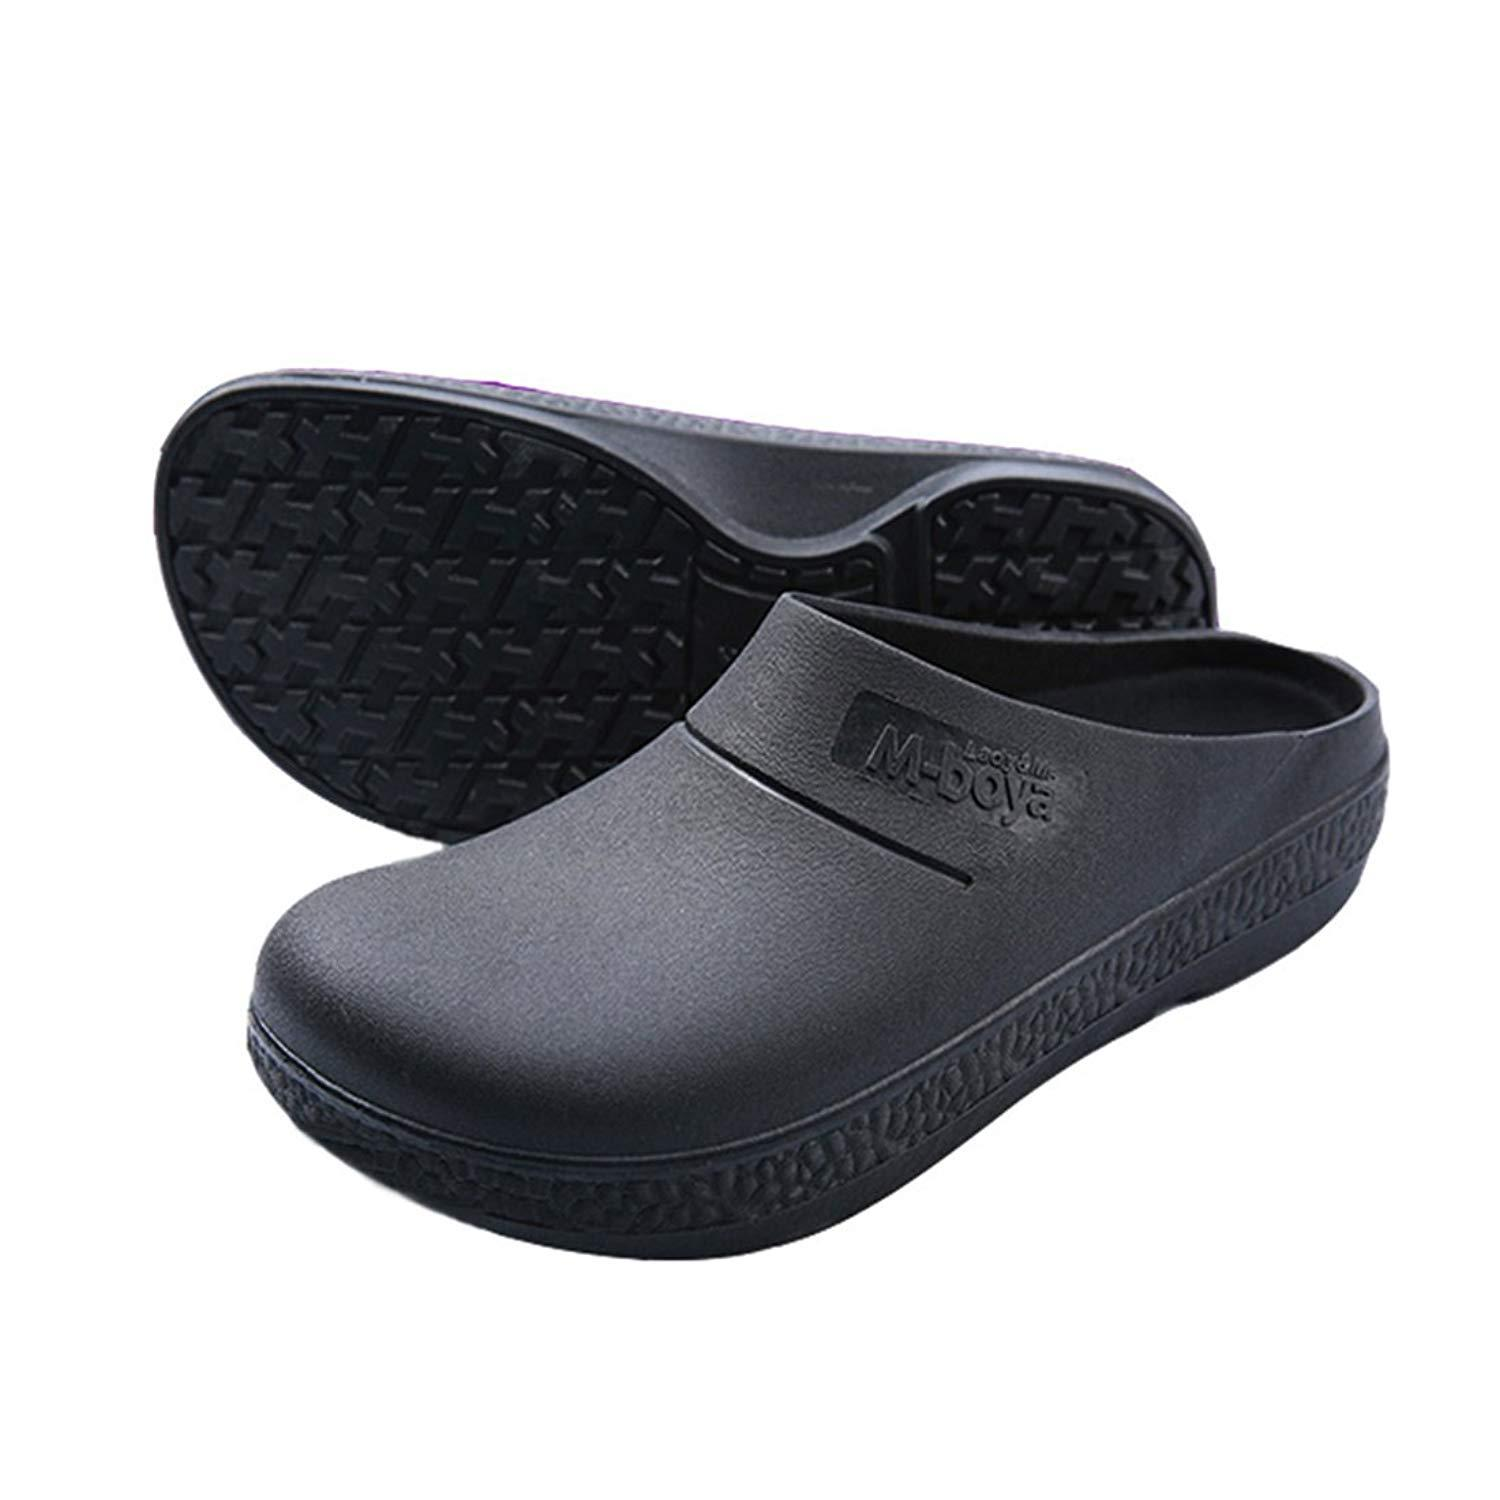 Slip Resistant Chef Clog Mule Restaurant Non Slip Work Shoes Black For Men  Women Canada 2019 From Henty 8aed7c5db4